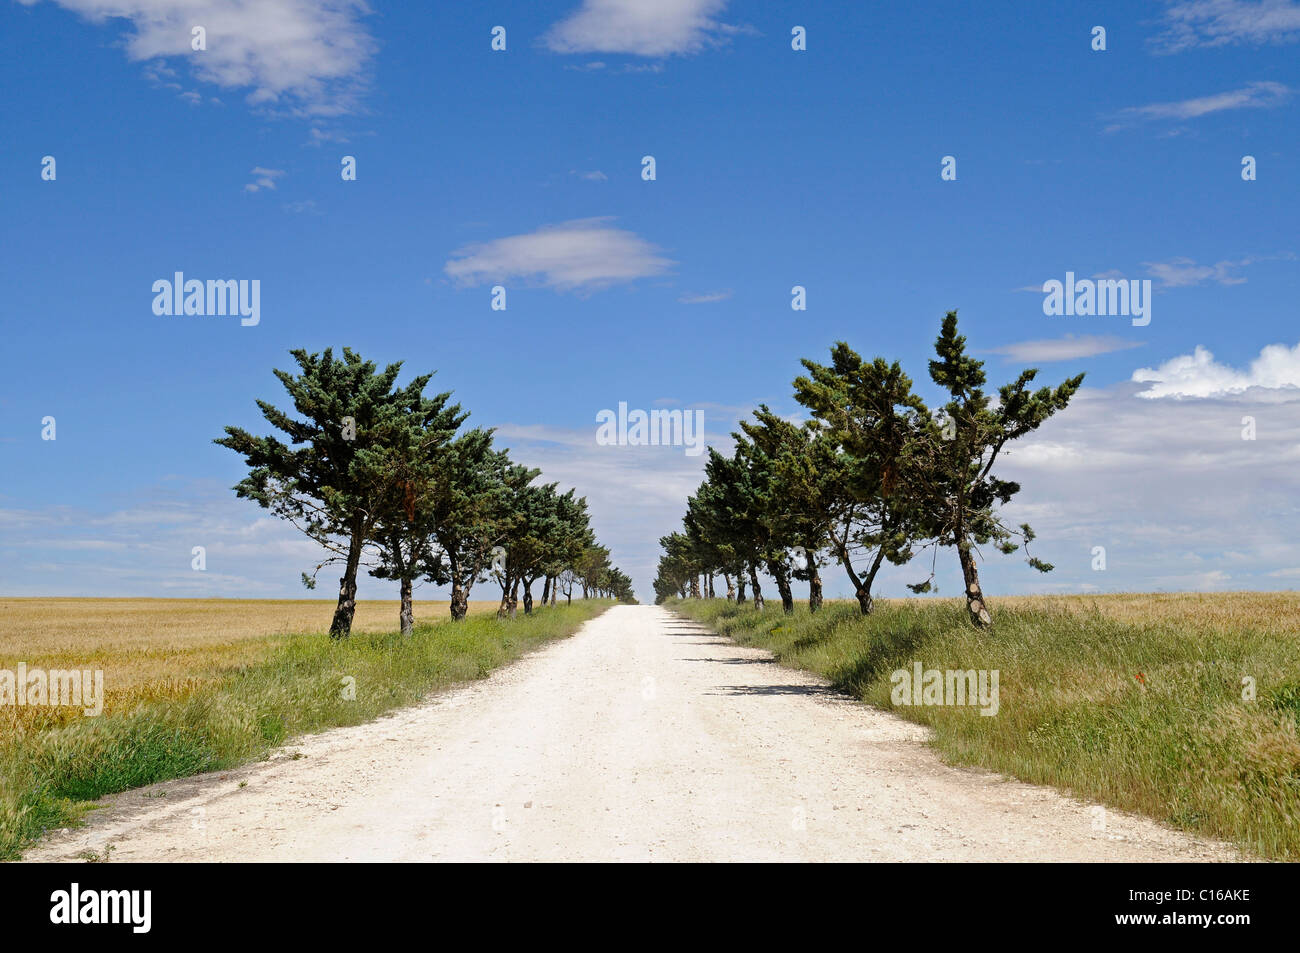 Isolated unpaved road heading straight to the horizon through the fields and a row of trees, Cuenca province, Castile - Stock Image